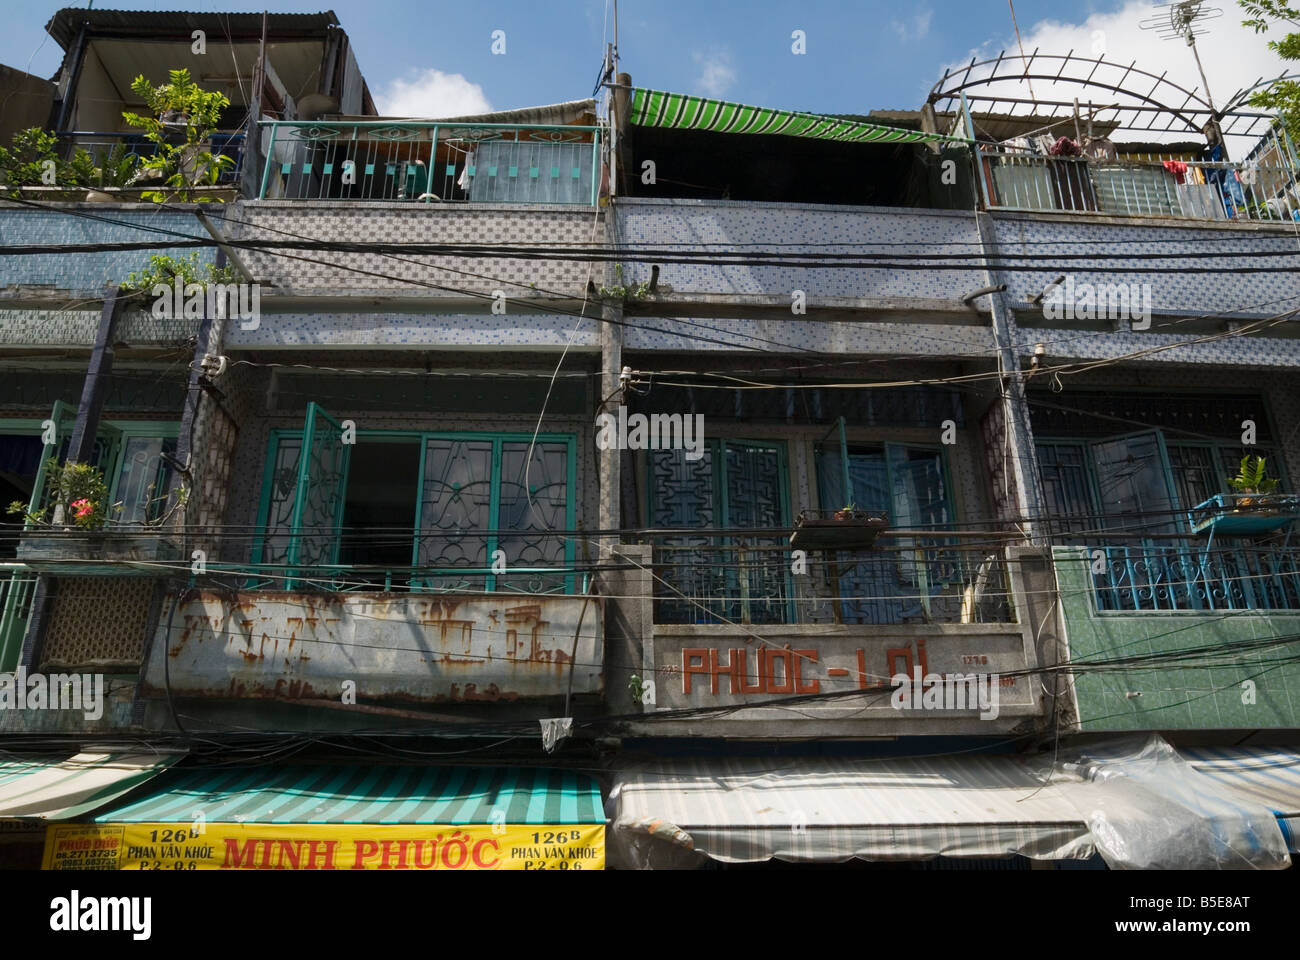 Shophouse facades in Cholon, Ho Chi Minh City - Stock Image